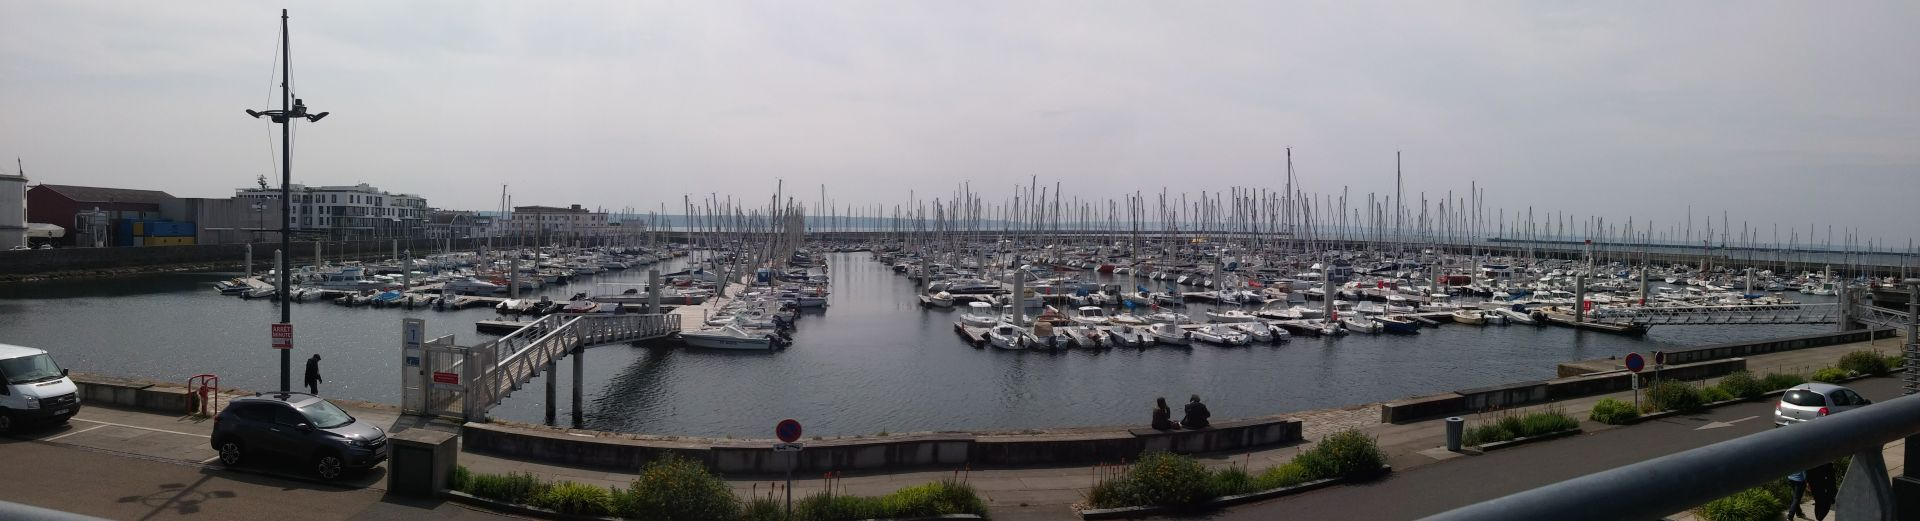 The marina in Brest